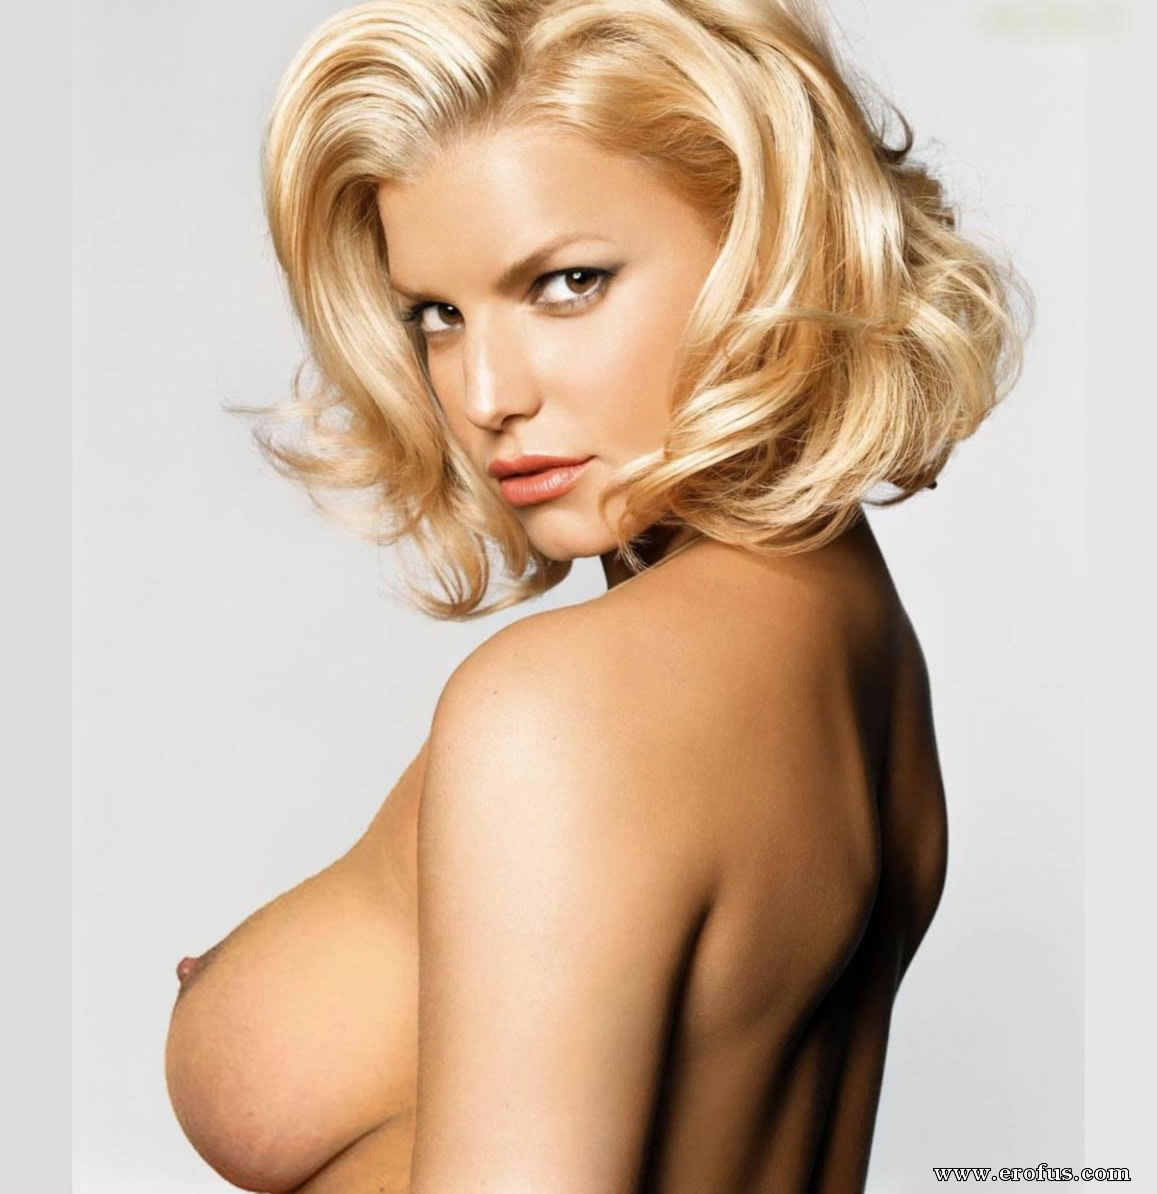 Jessica simpson playboy nude pictures 8